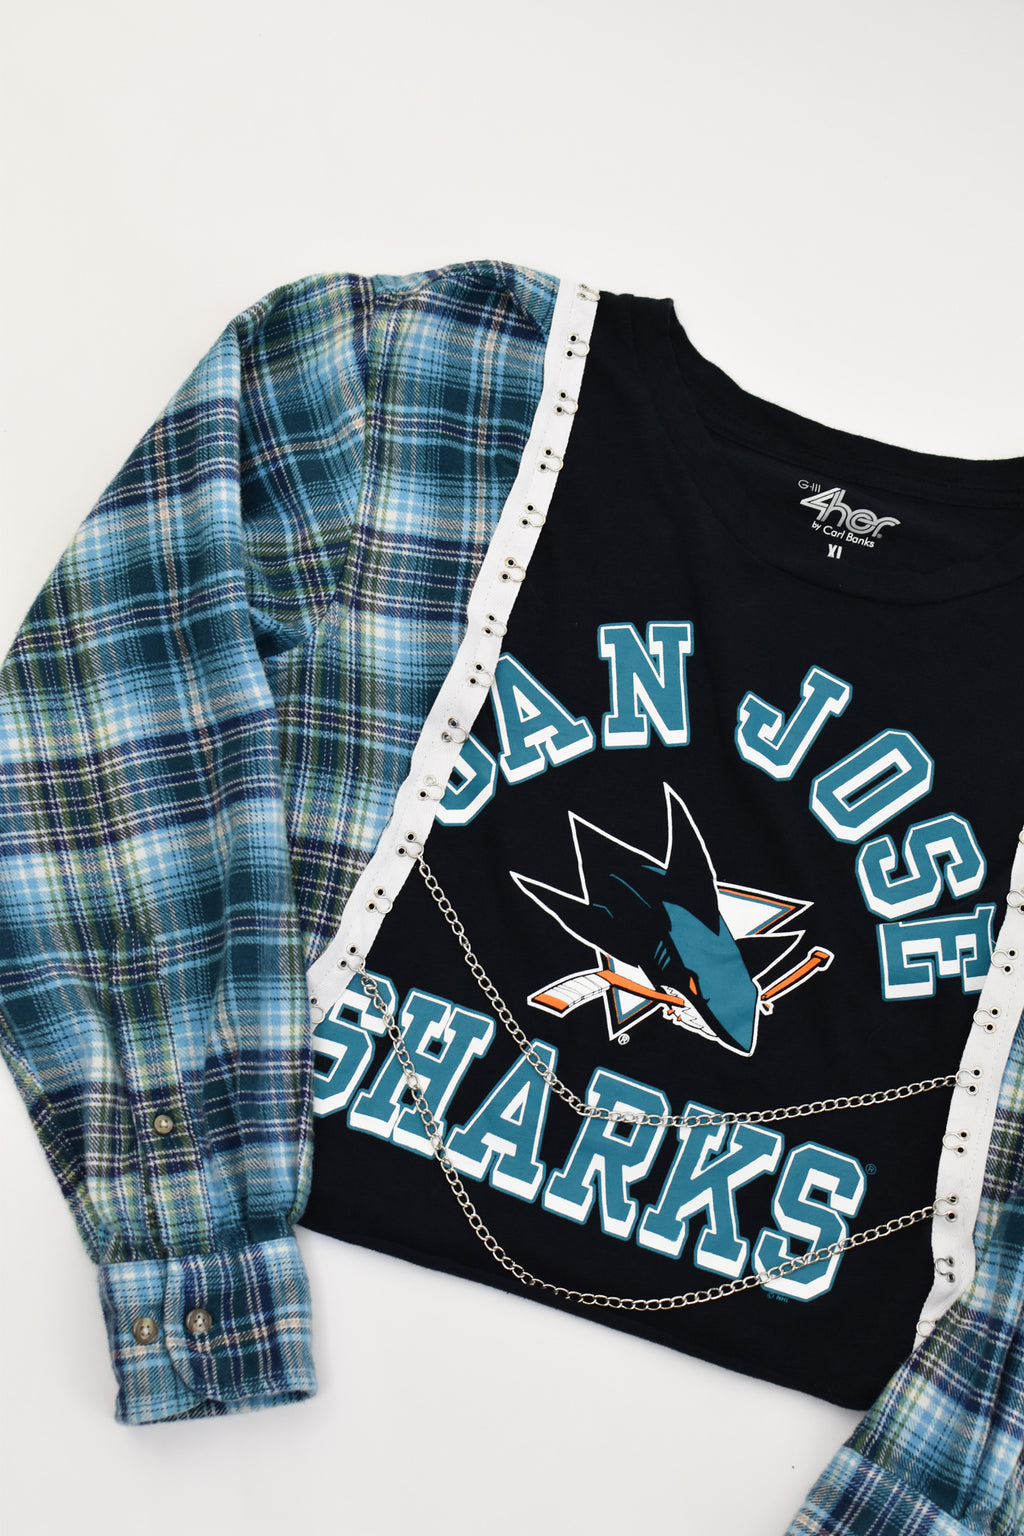 Upcycled San Jose Sharks Chain Rock Top